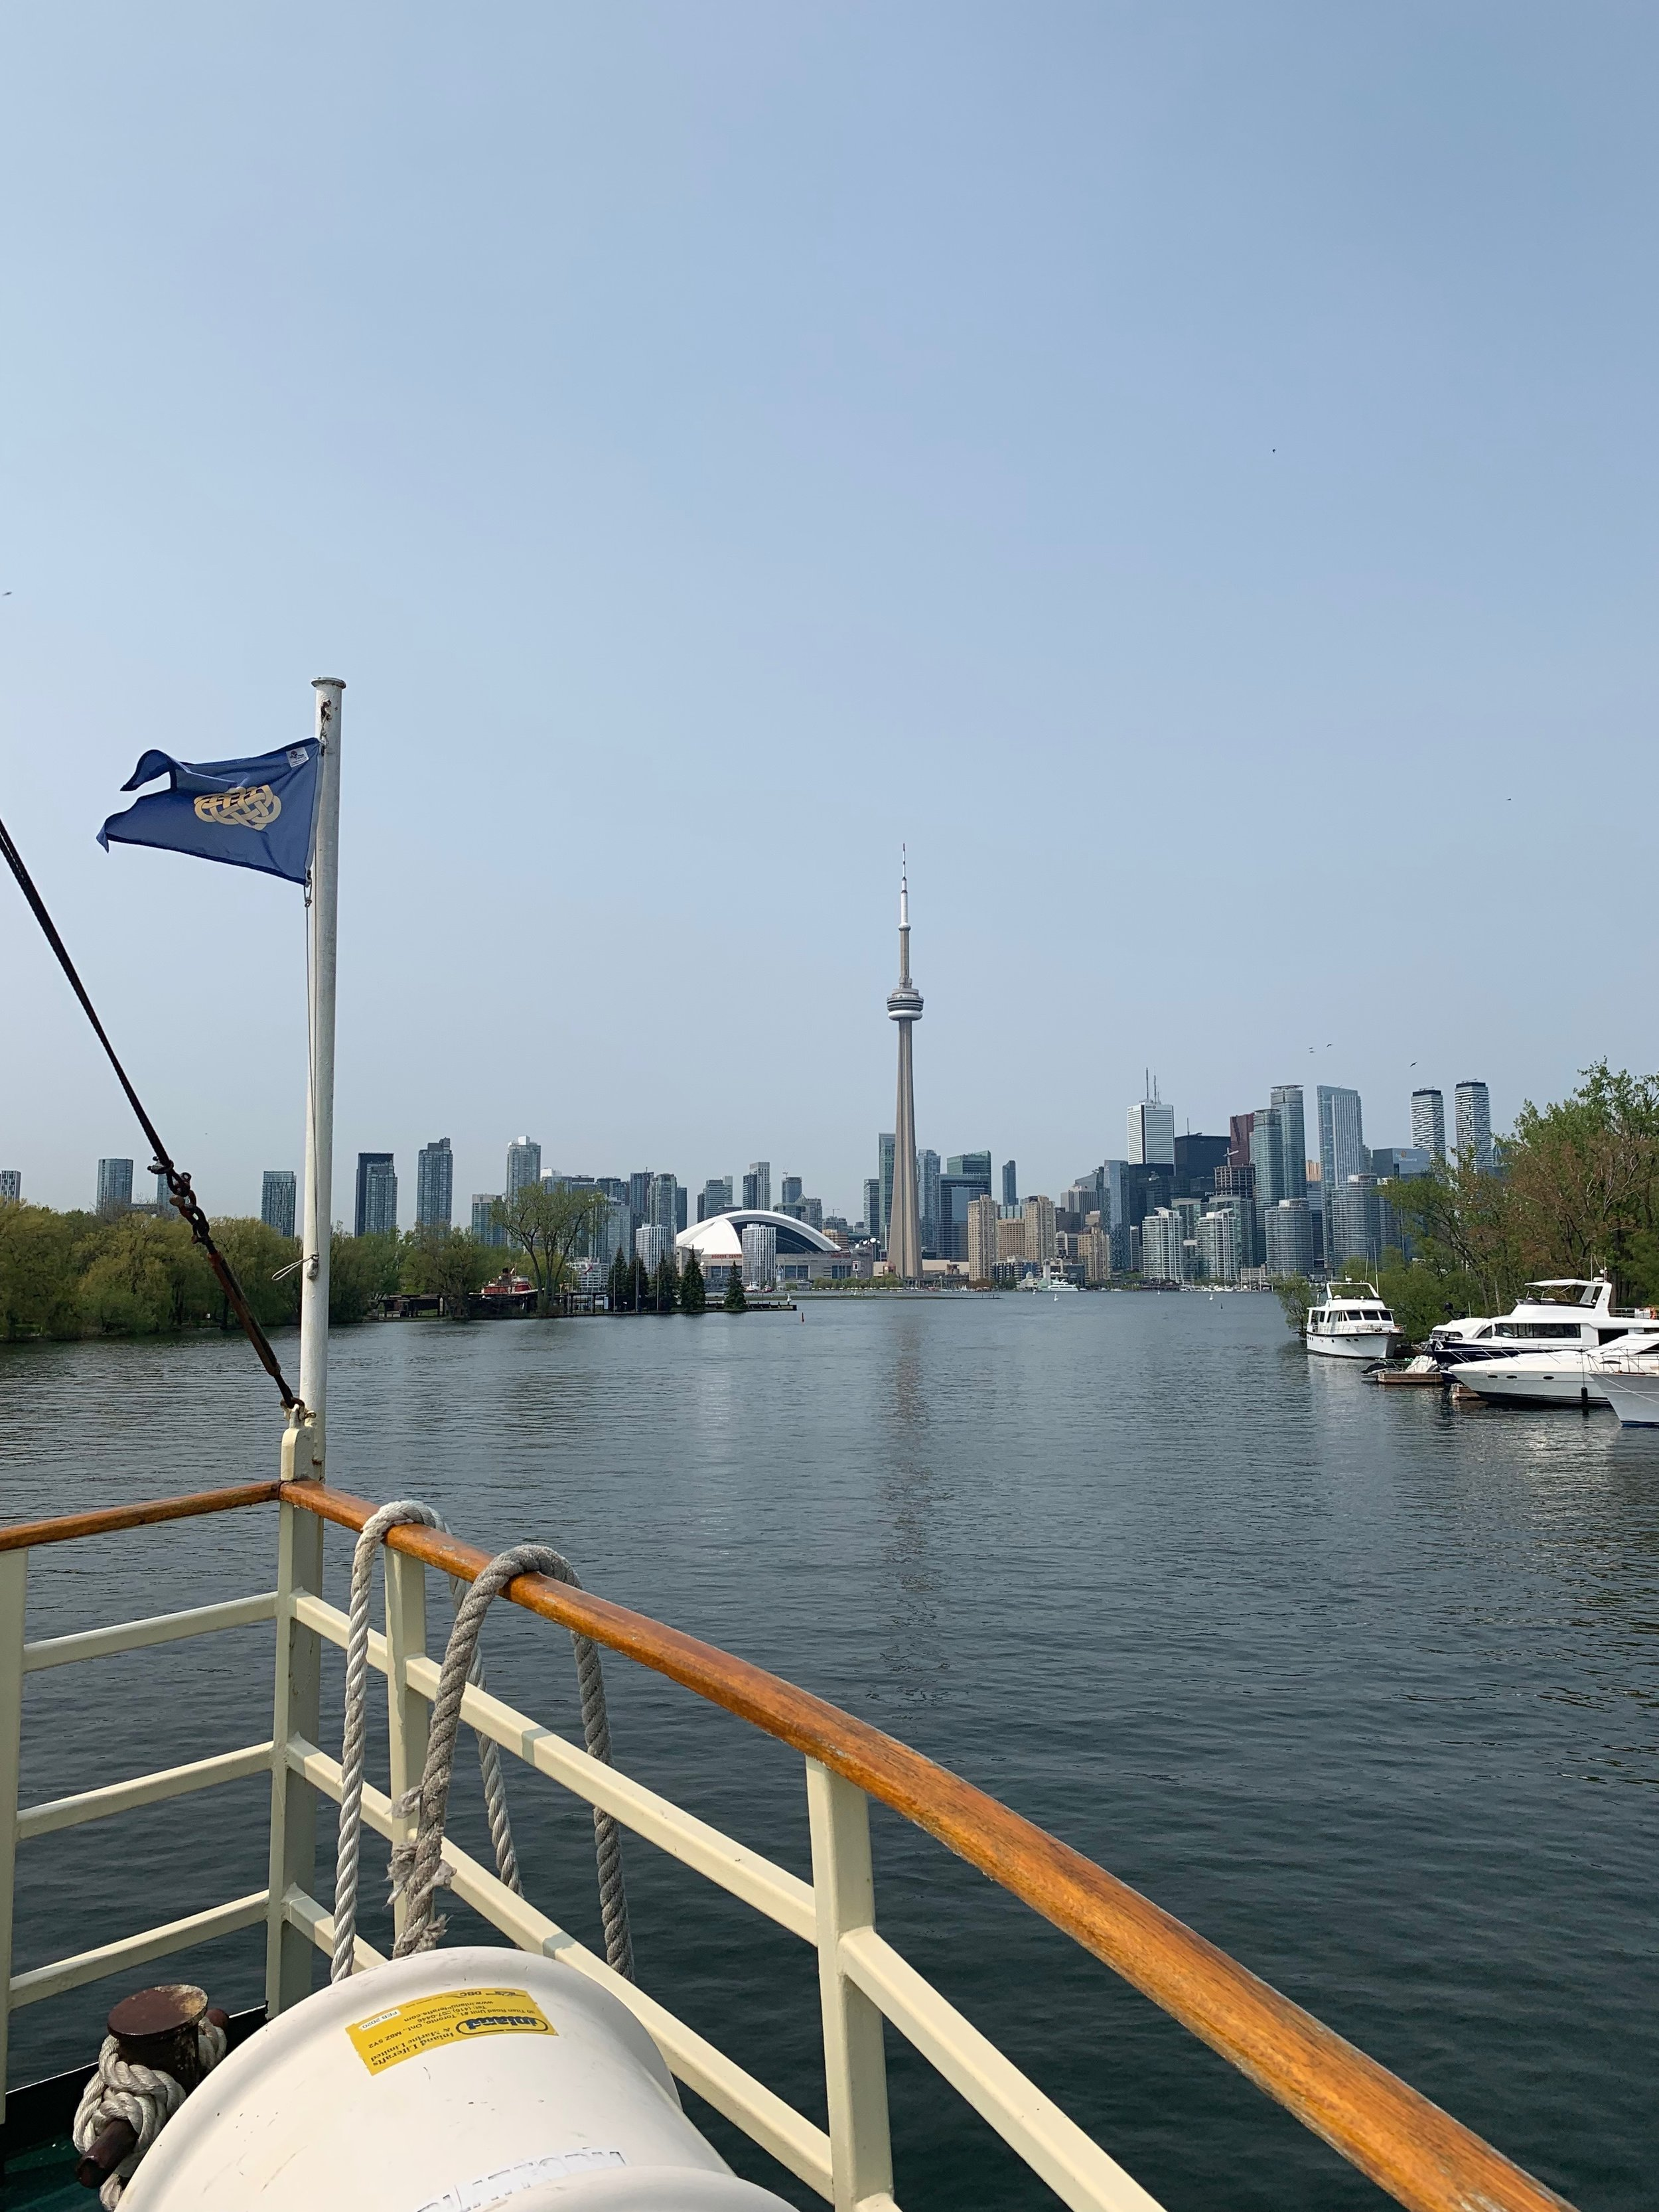 Peaceful Toronto Islands and view of the bustling downtown